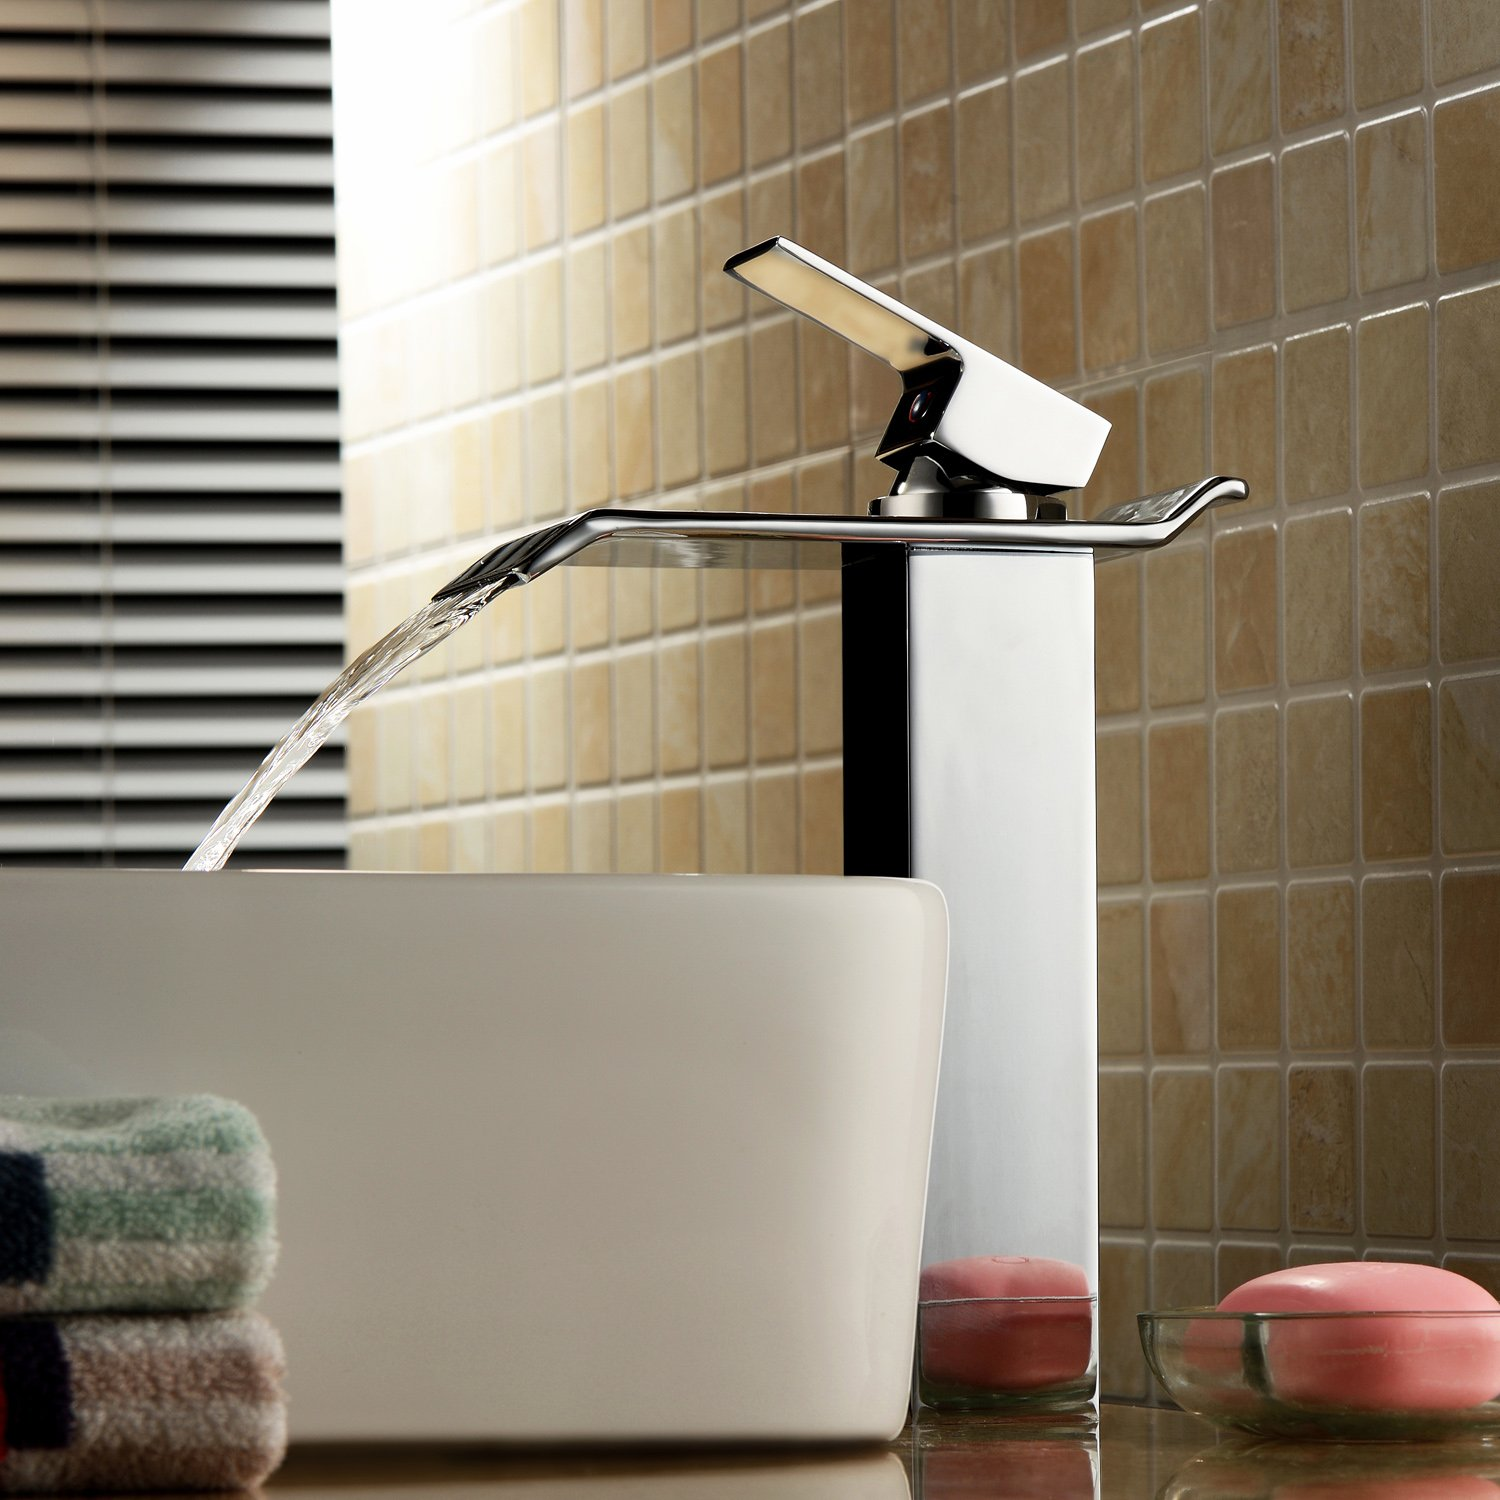 Contemporary Solid Brass Bathroom Sink Faucet Widespread Waterfall Lavatory Mixer Single Handle Deck Mounted Taps